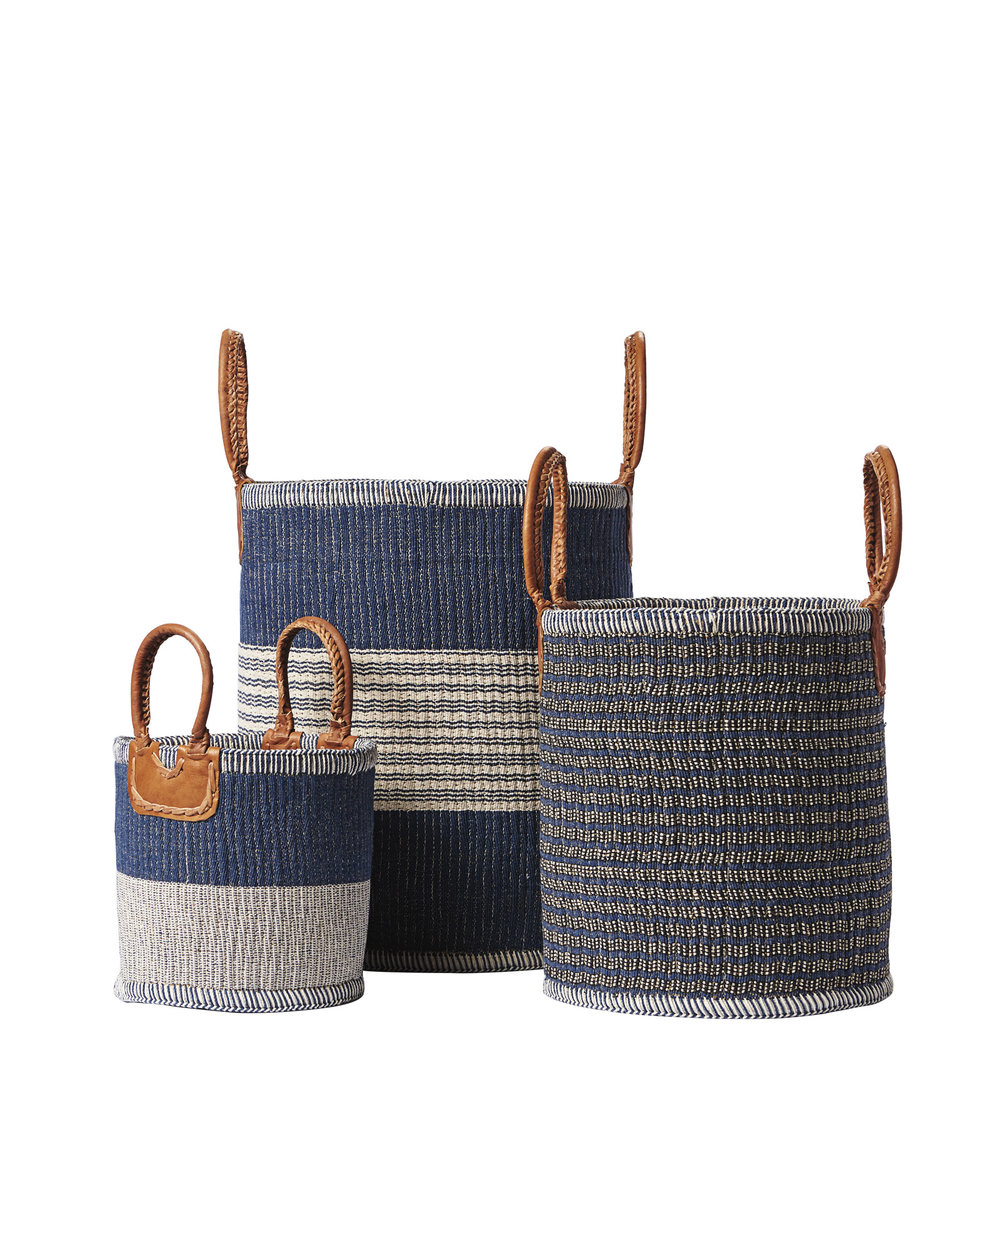 Hungting Baskets - Indigo .jpg